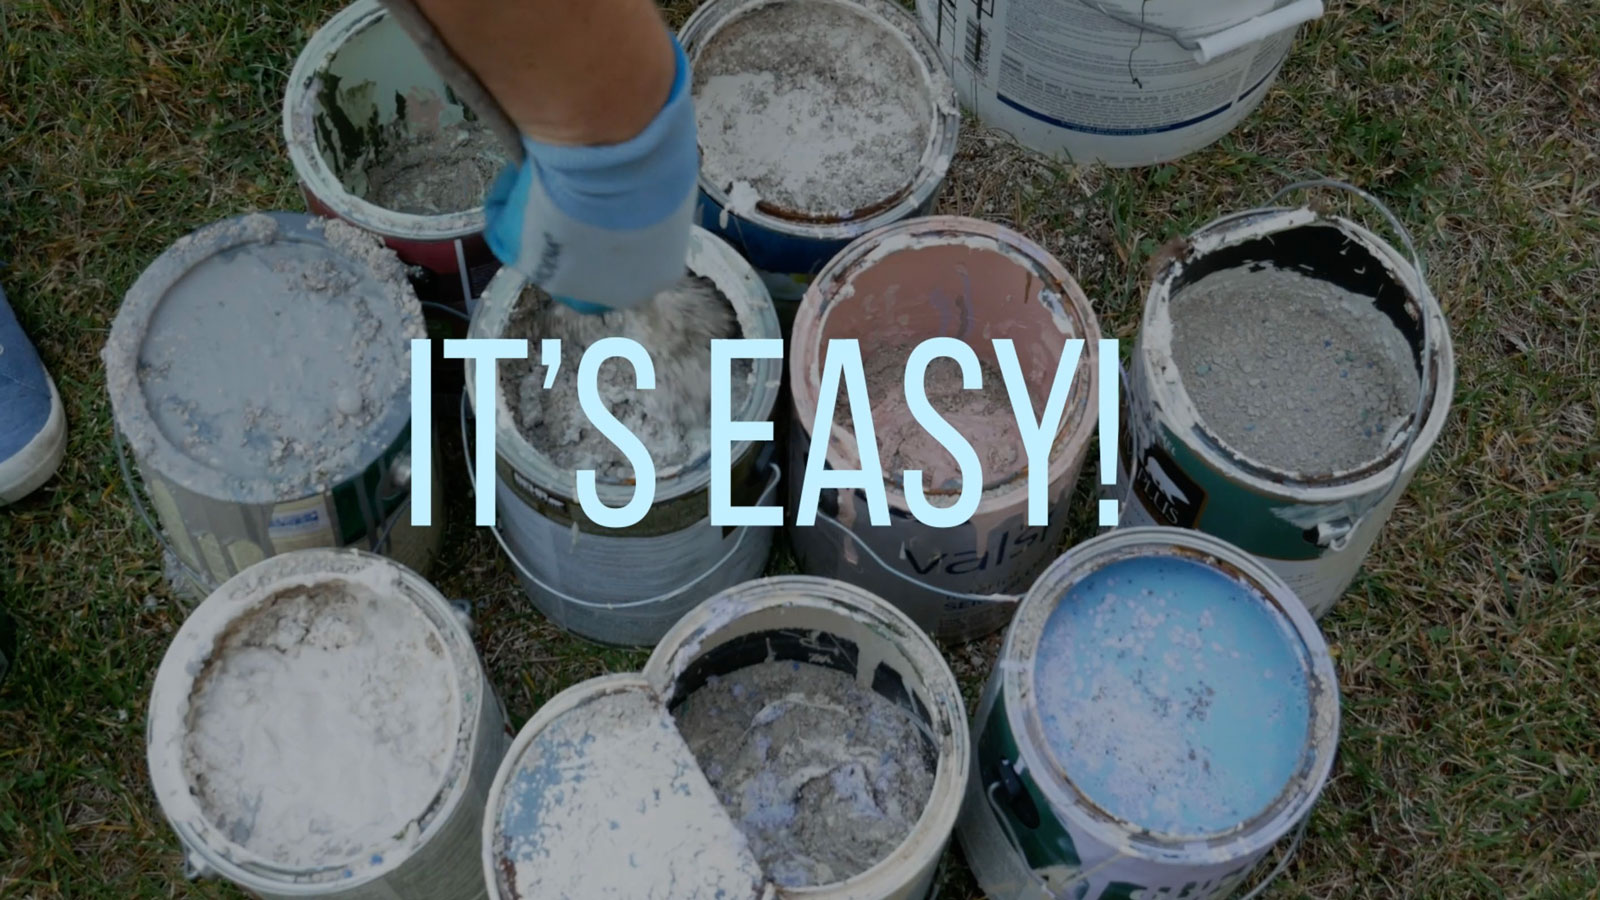 How do I dispose of latex paint?